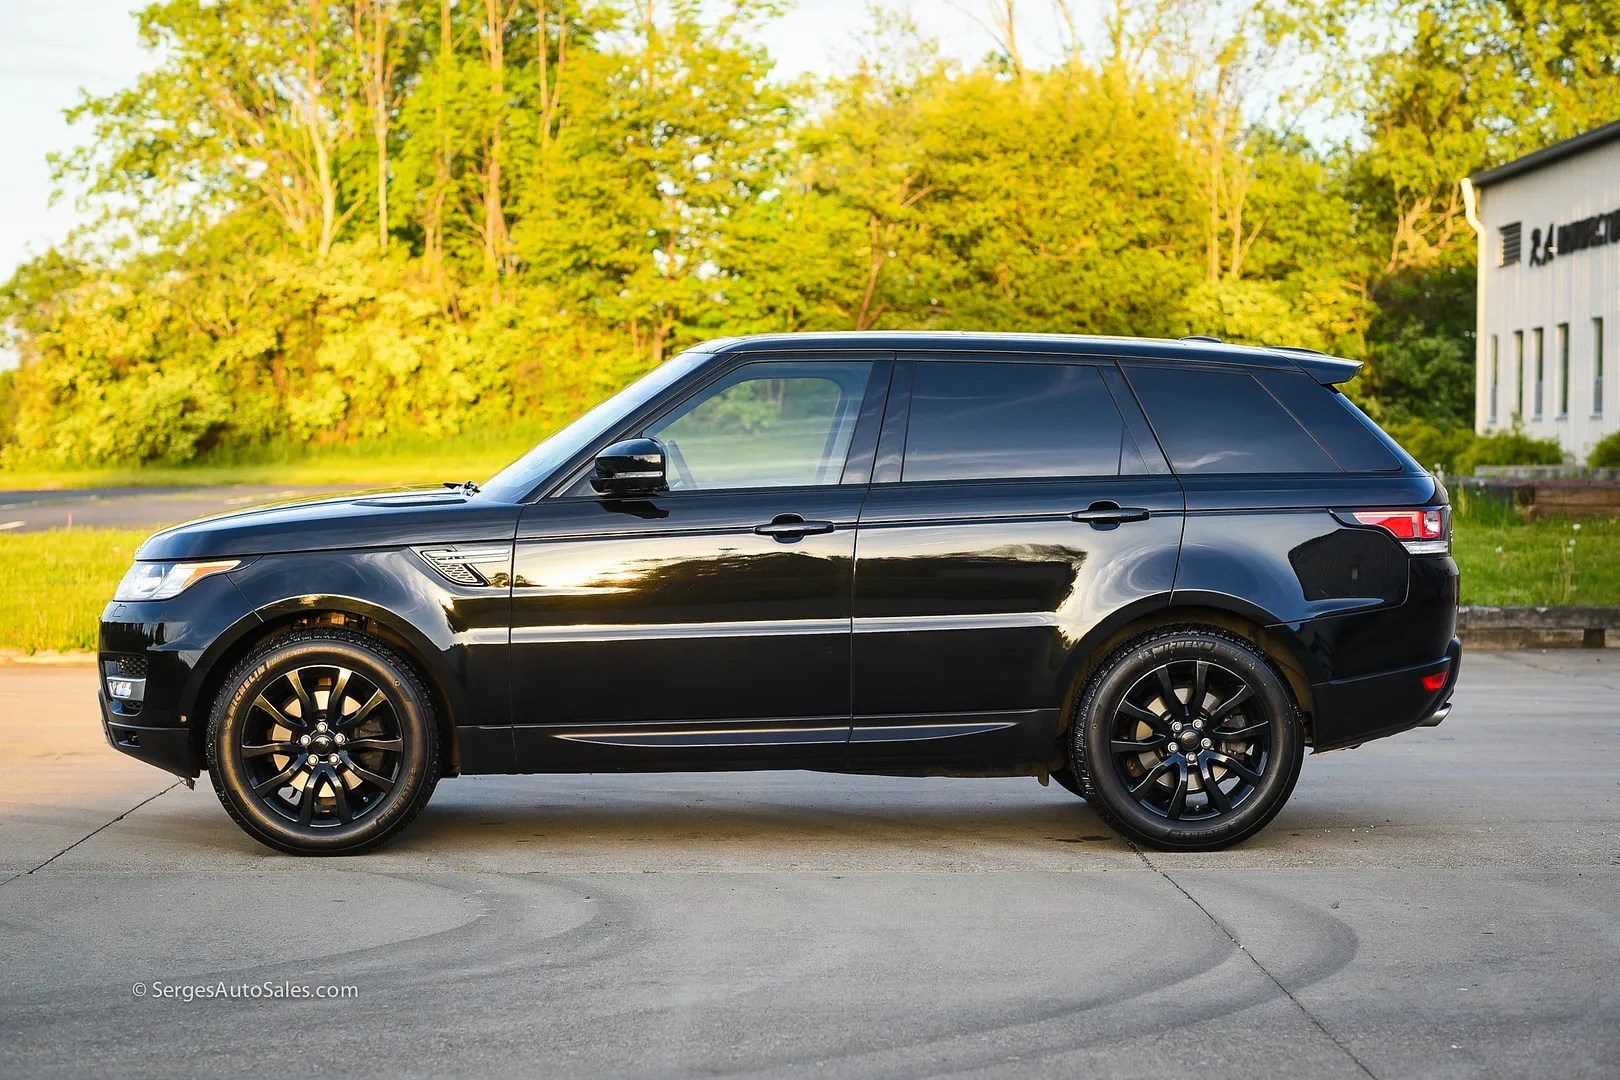 photo Serges-auto-sales-range-rover-for-sale-northeast-pa-5_zpsyij9flpb.jpg